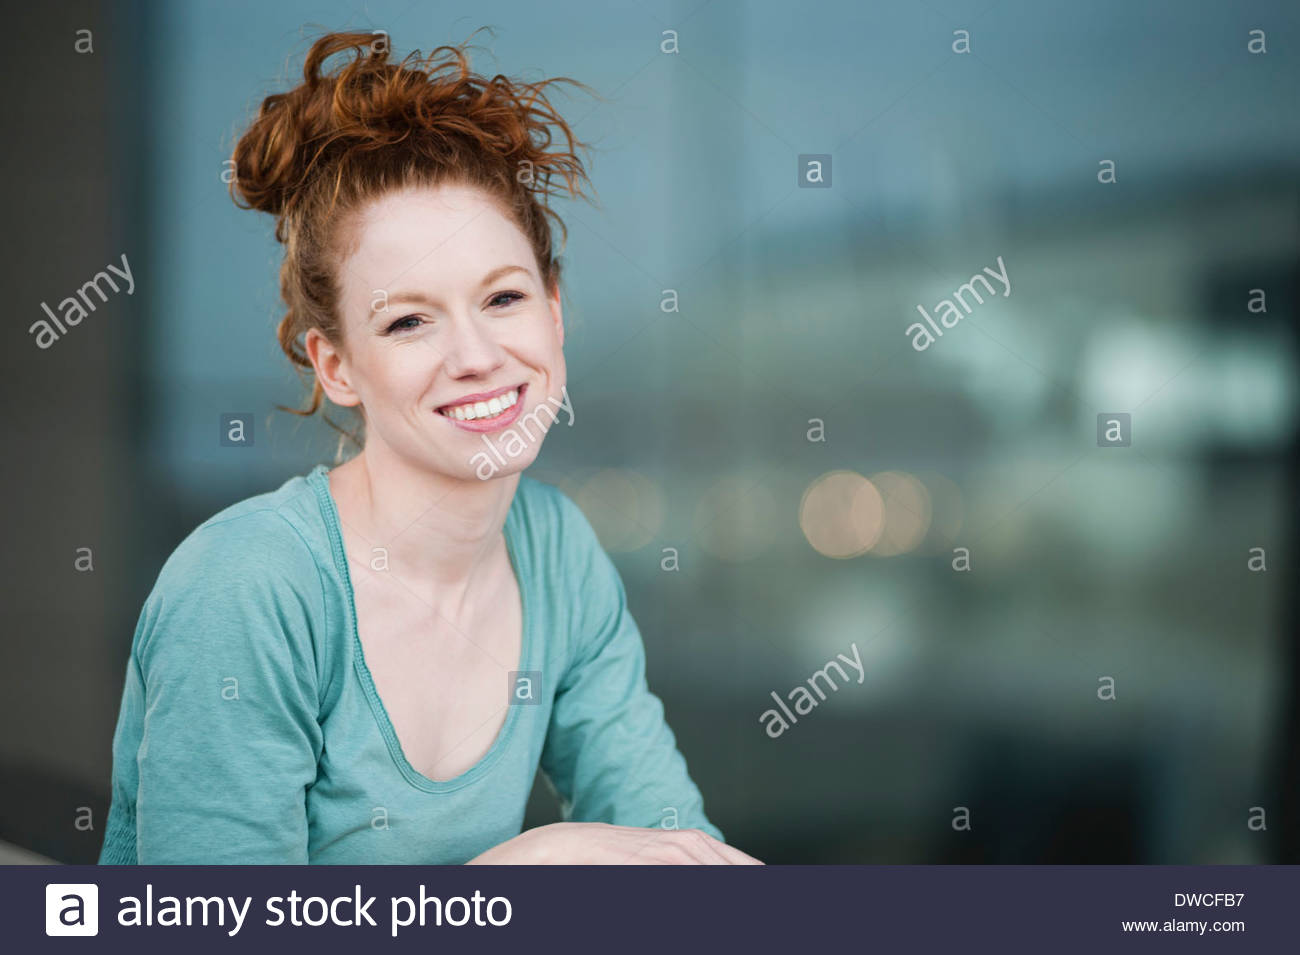 Portrait of happy young woman - Stock Image